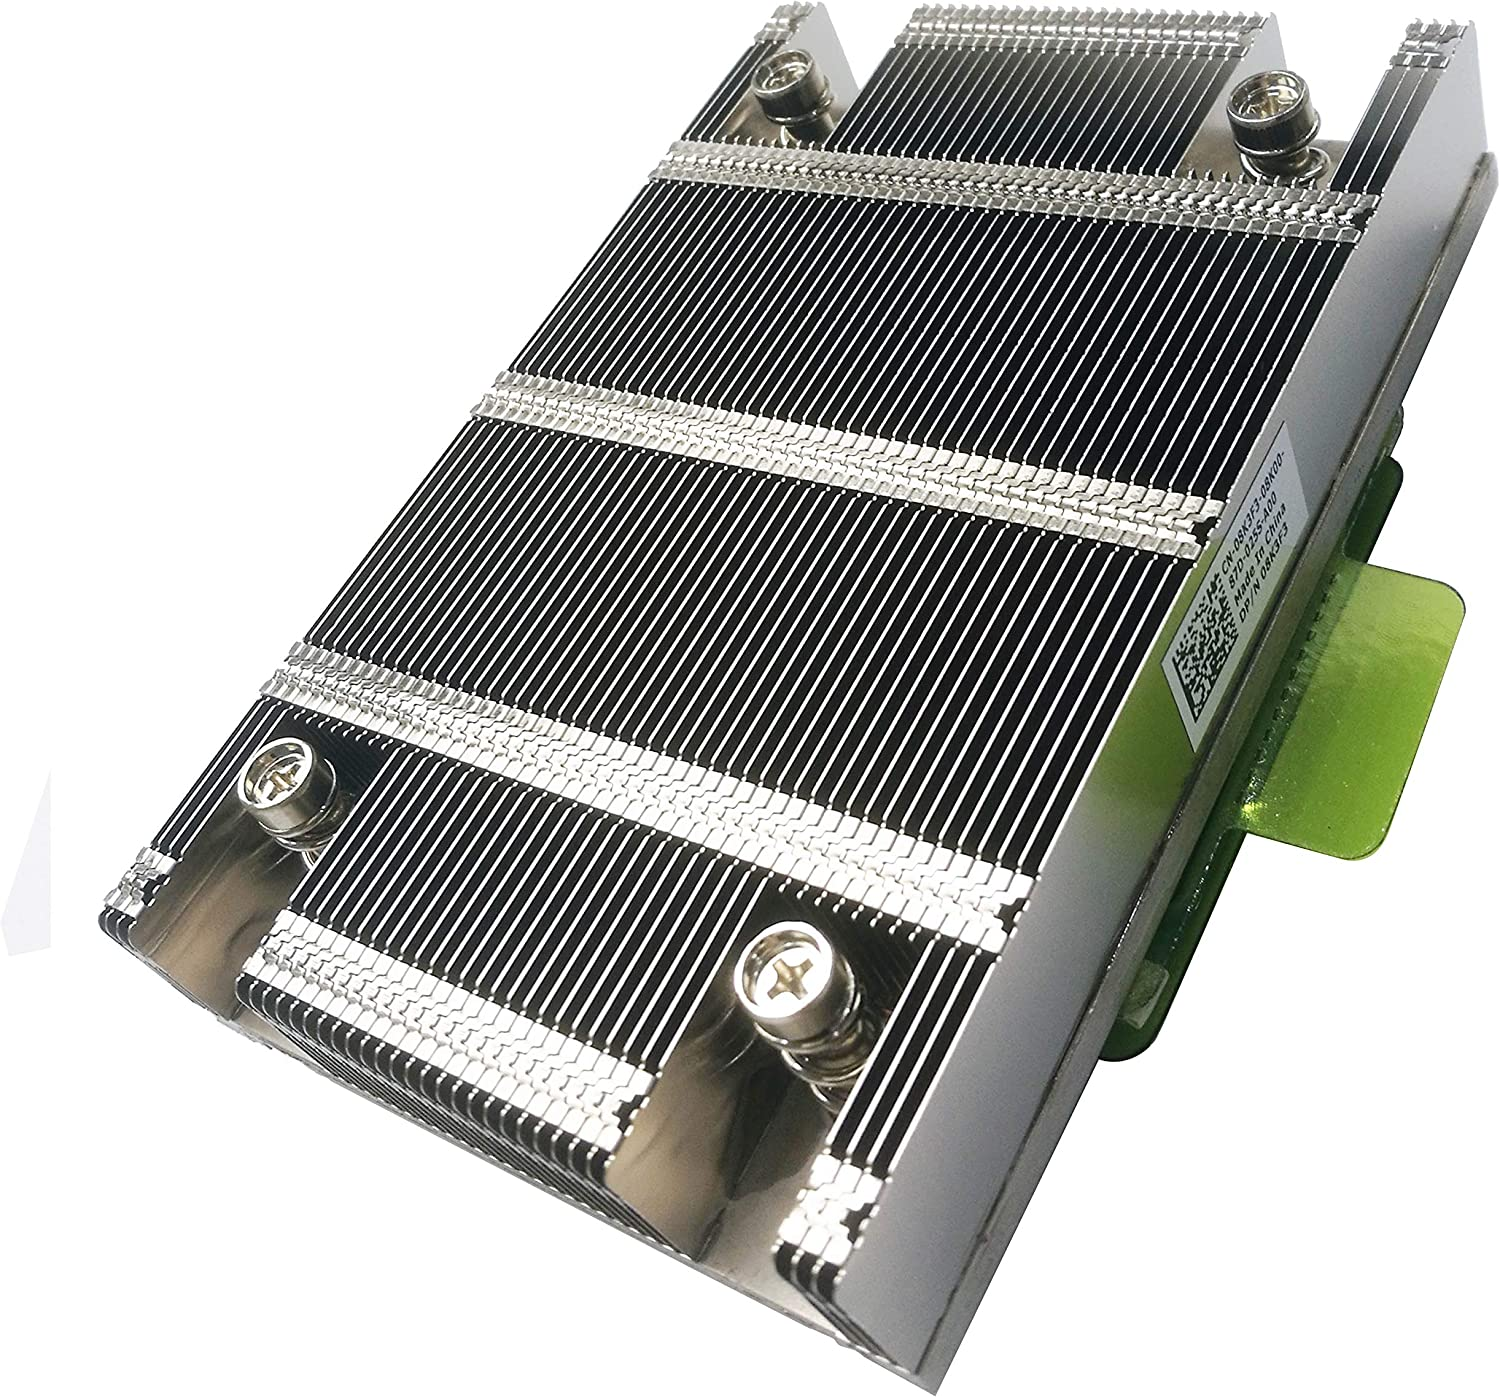 BestPartsCom CPU Air Cooler All stores are sold Heat Dell with Deluxe Compatible Sink Power